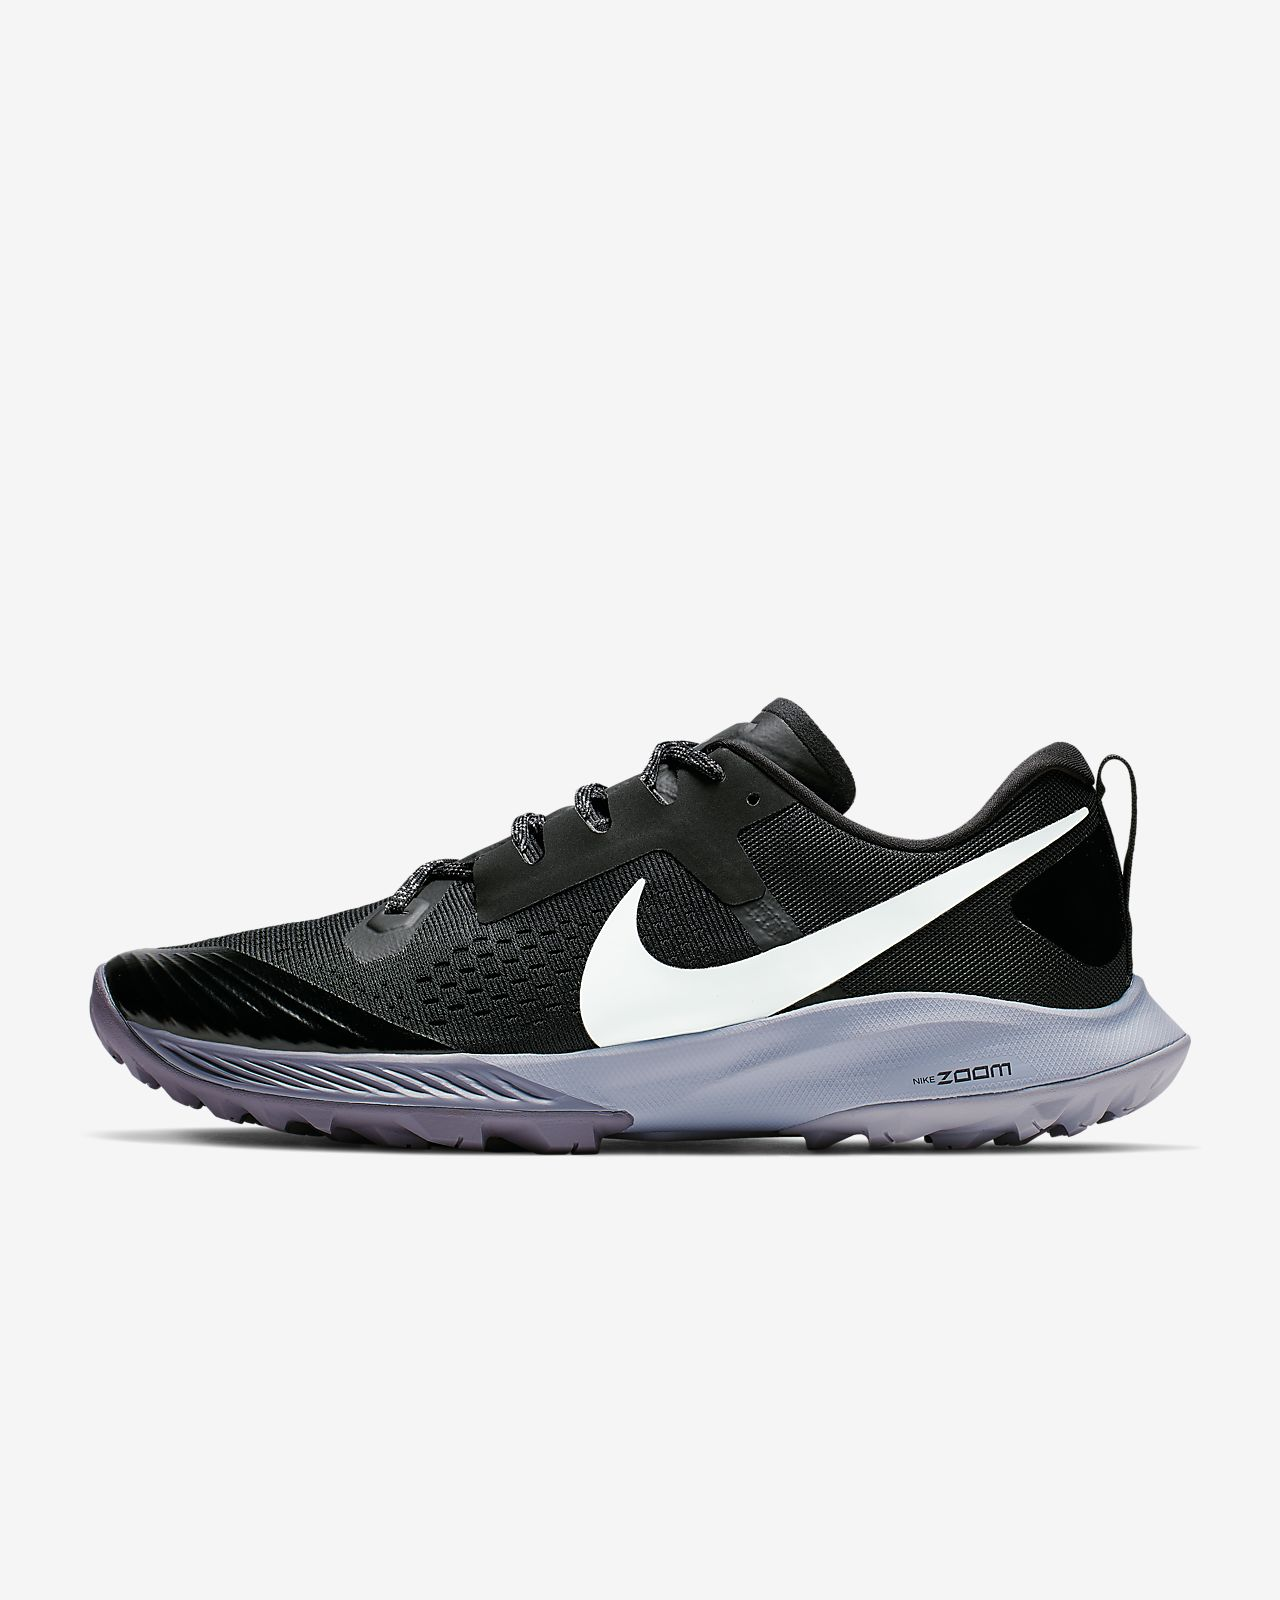 new product 2fa93 0f23f ... Chaussure de running Nike Air Zoom Terra Kiger 5 pour Homme